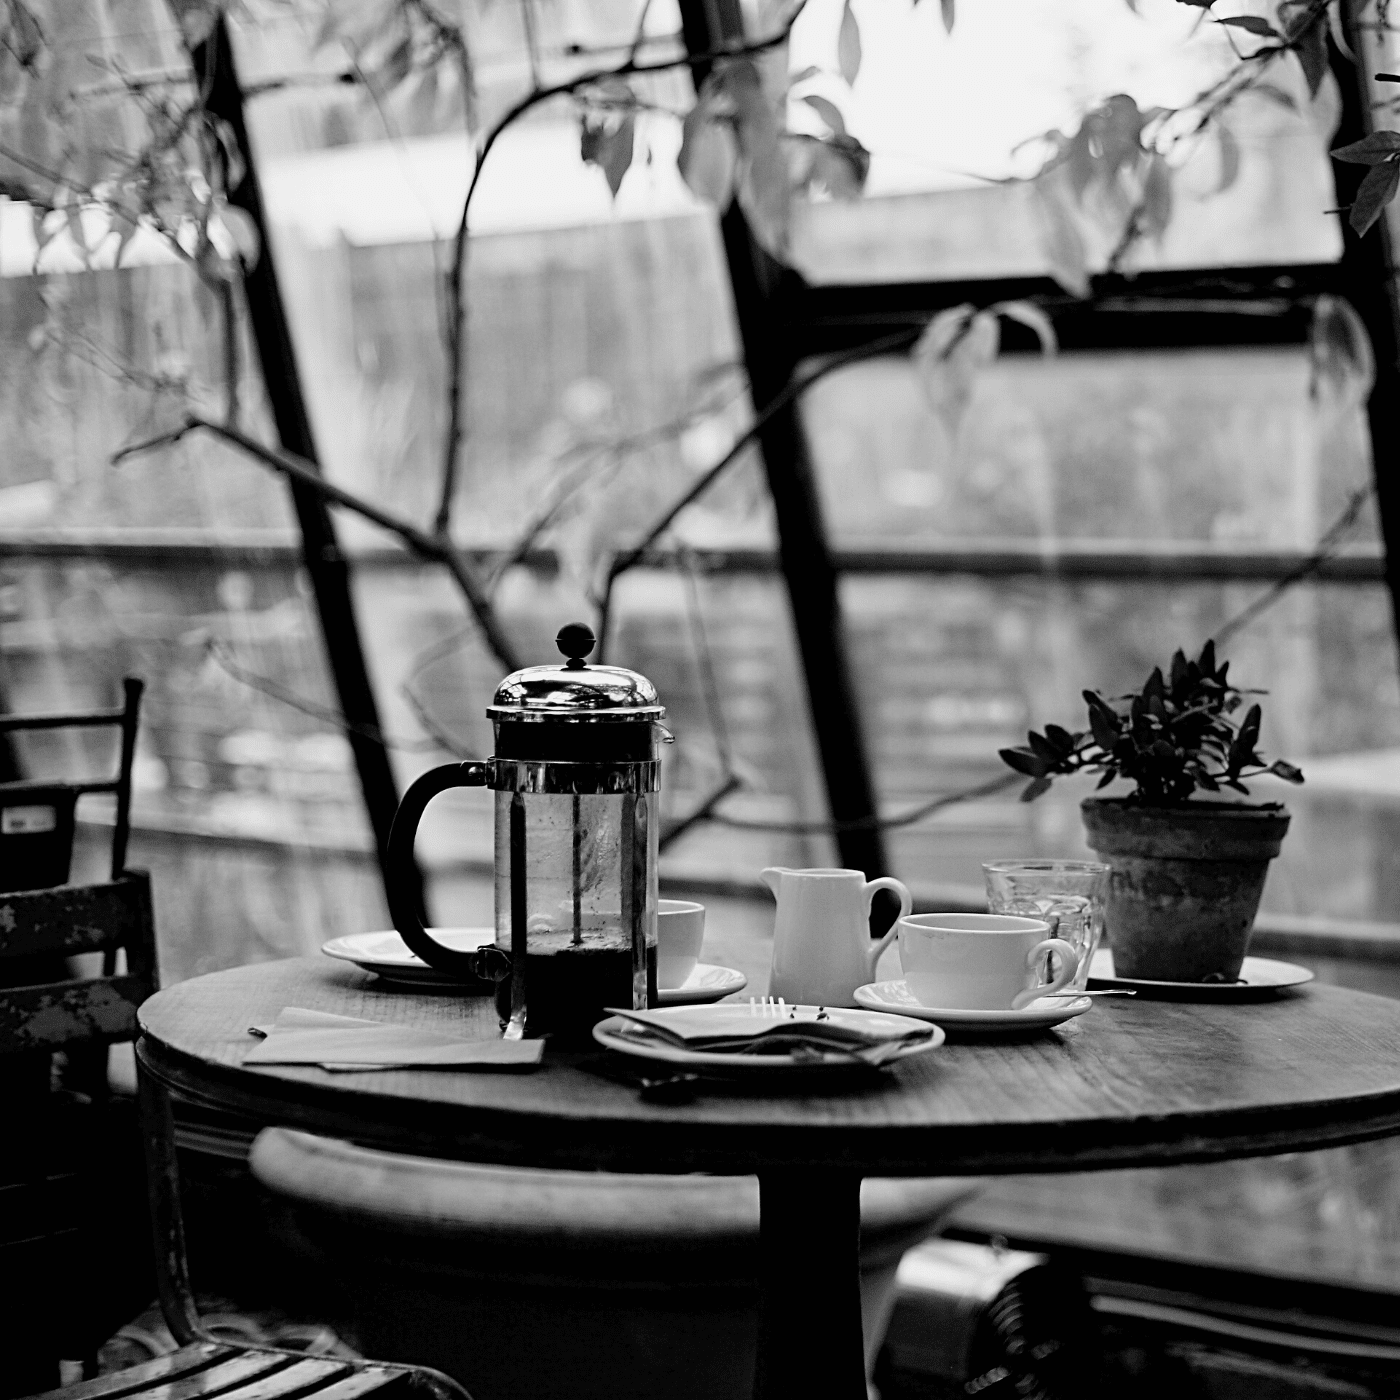 Black and white image of a table set for coffee.